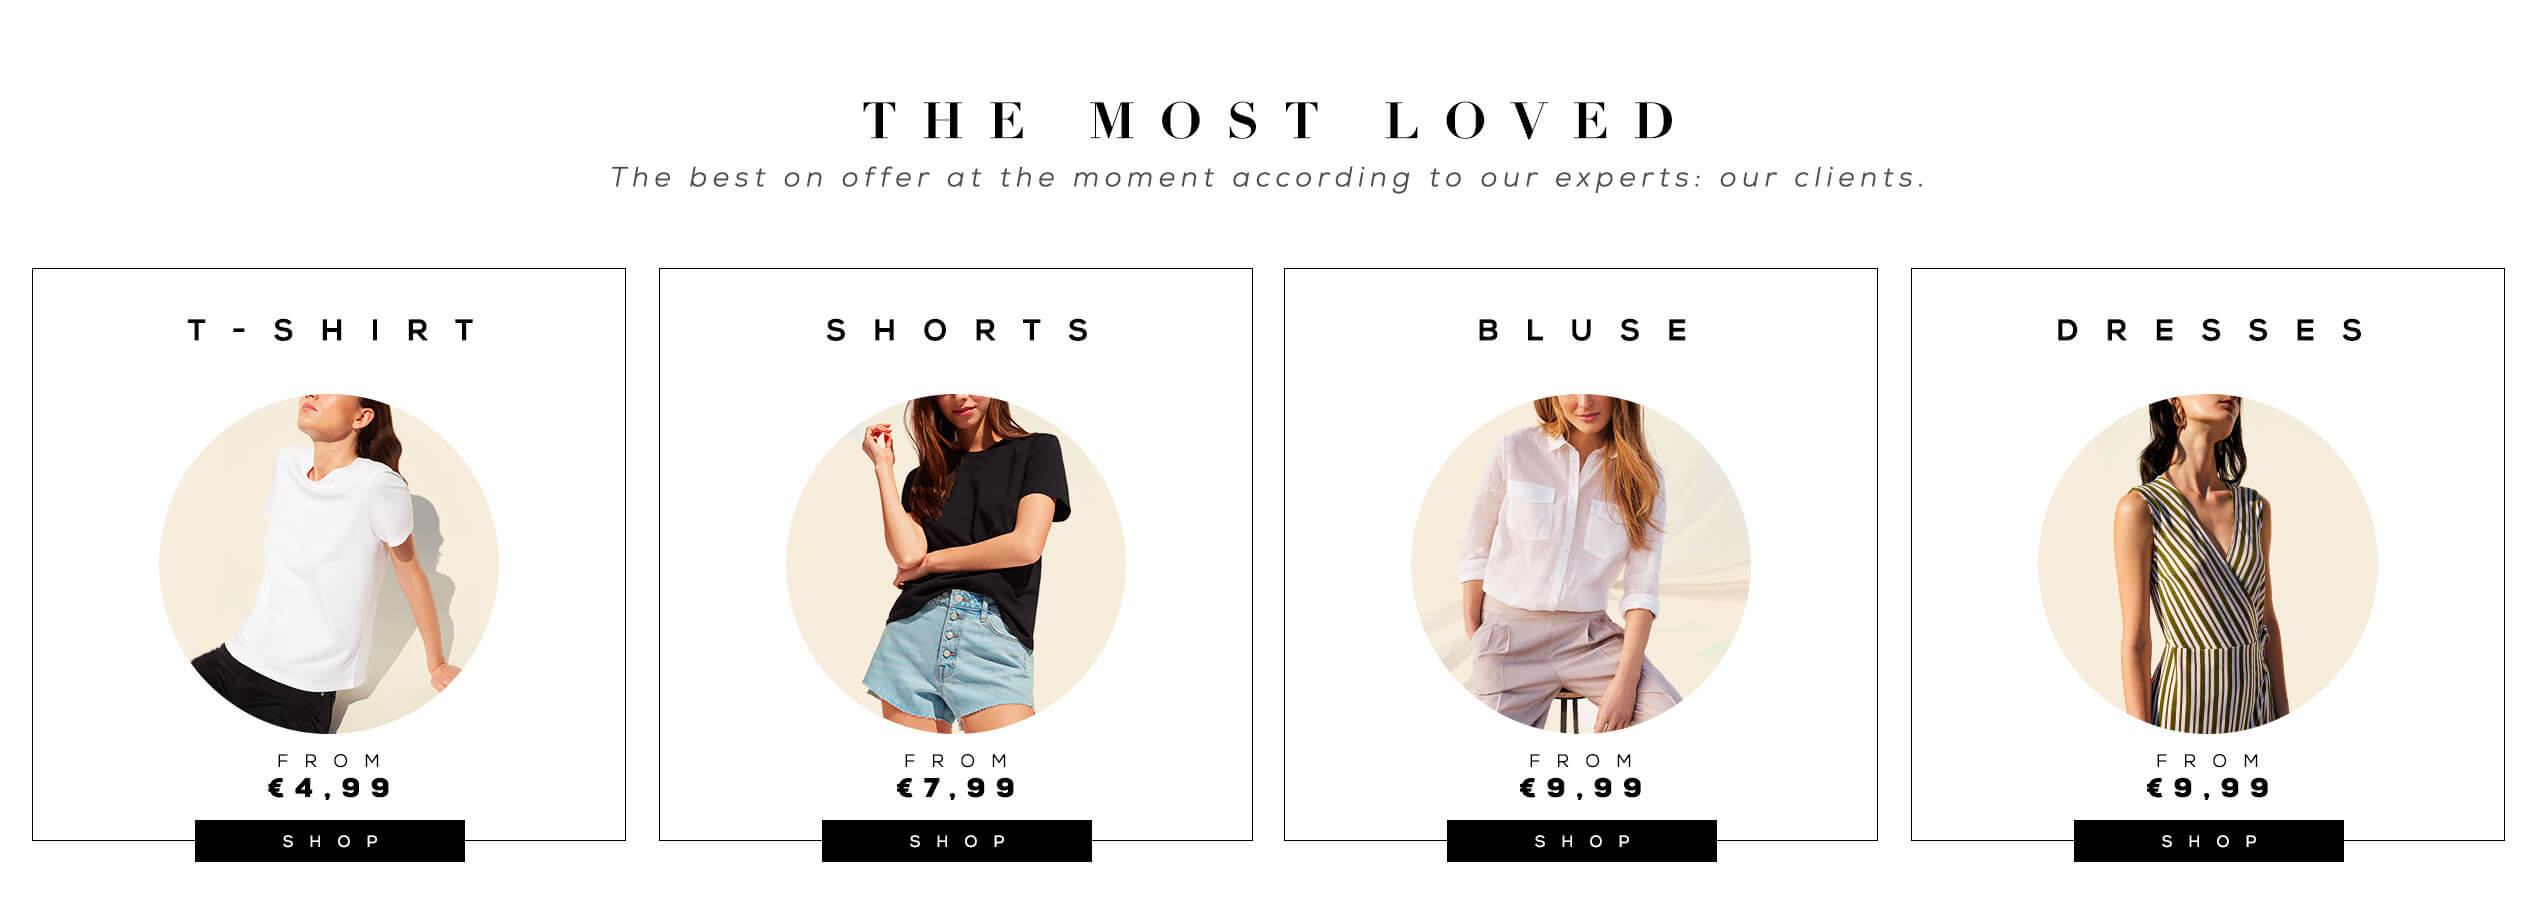 e35416428a1f ONLINE CLOTHING: CASUAL, TRENDY STYLE FOR MEN, WOMEN AND KIDS. OVS is  Italy's leading brand ...